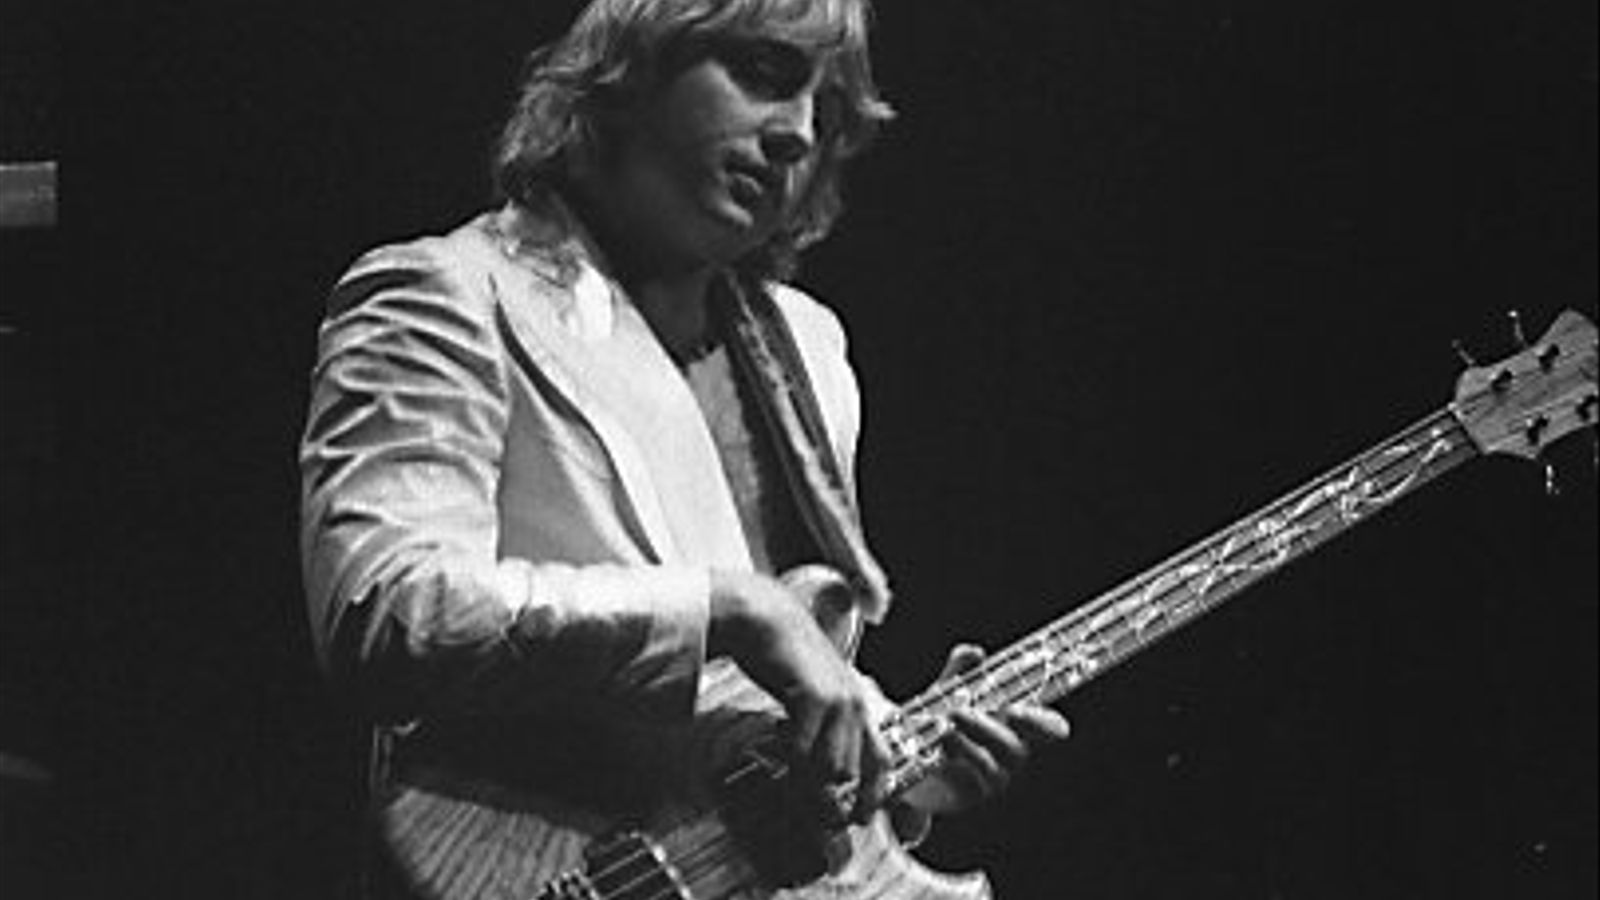 Greg Lake durant un concert d'Emerson, Lake & Palmer l'any 1978